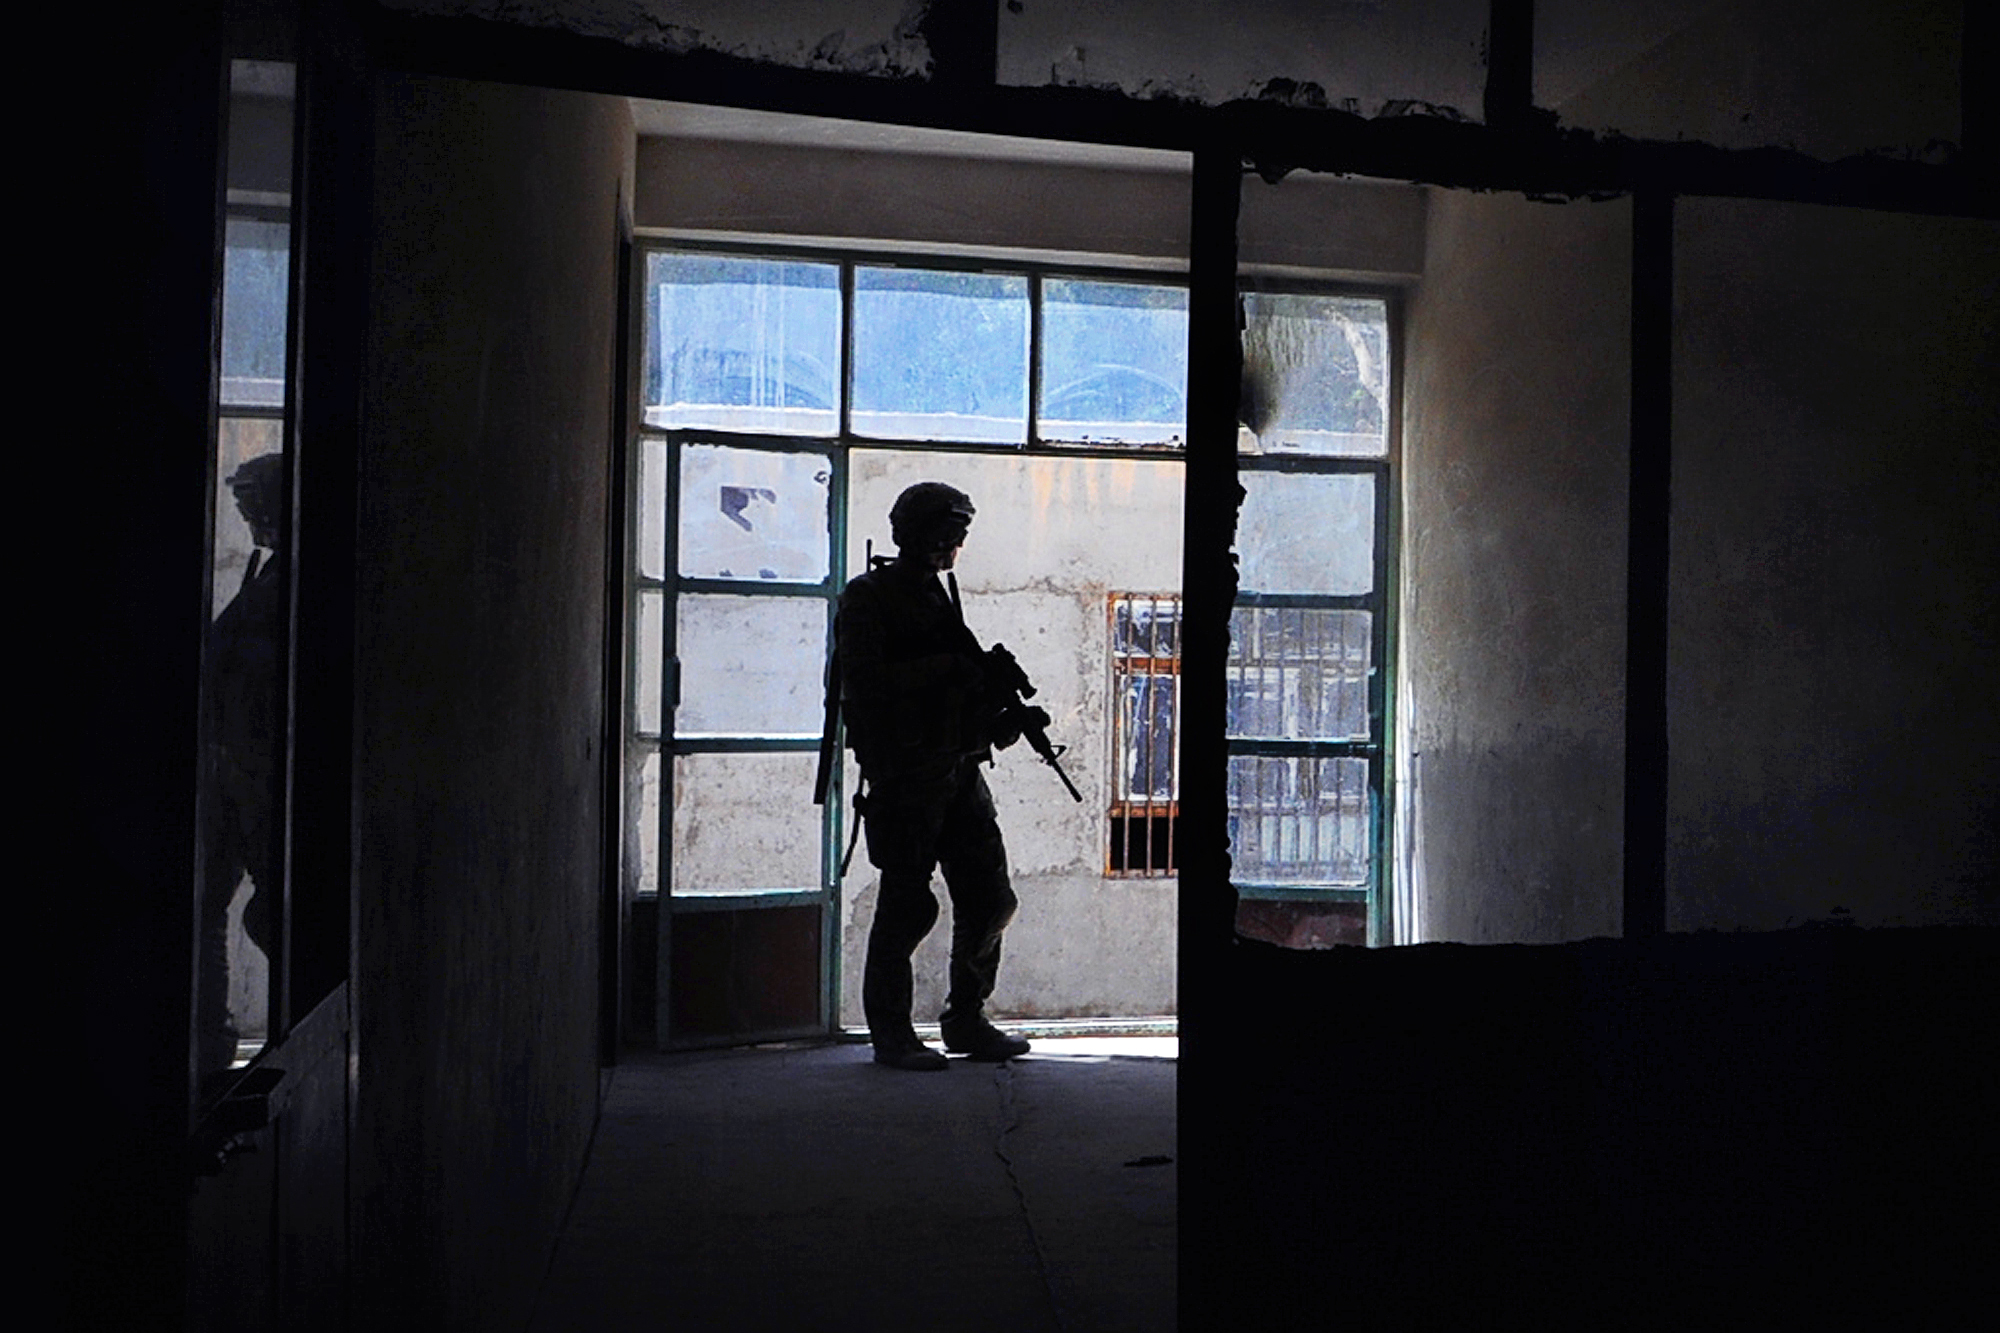 A U.S. Army soldier provides security at a school in Farah City, Afghanistan, on Aug. 1, 2012. (Photo credit: U.S. Navy Lt. Benjamin Addison)